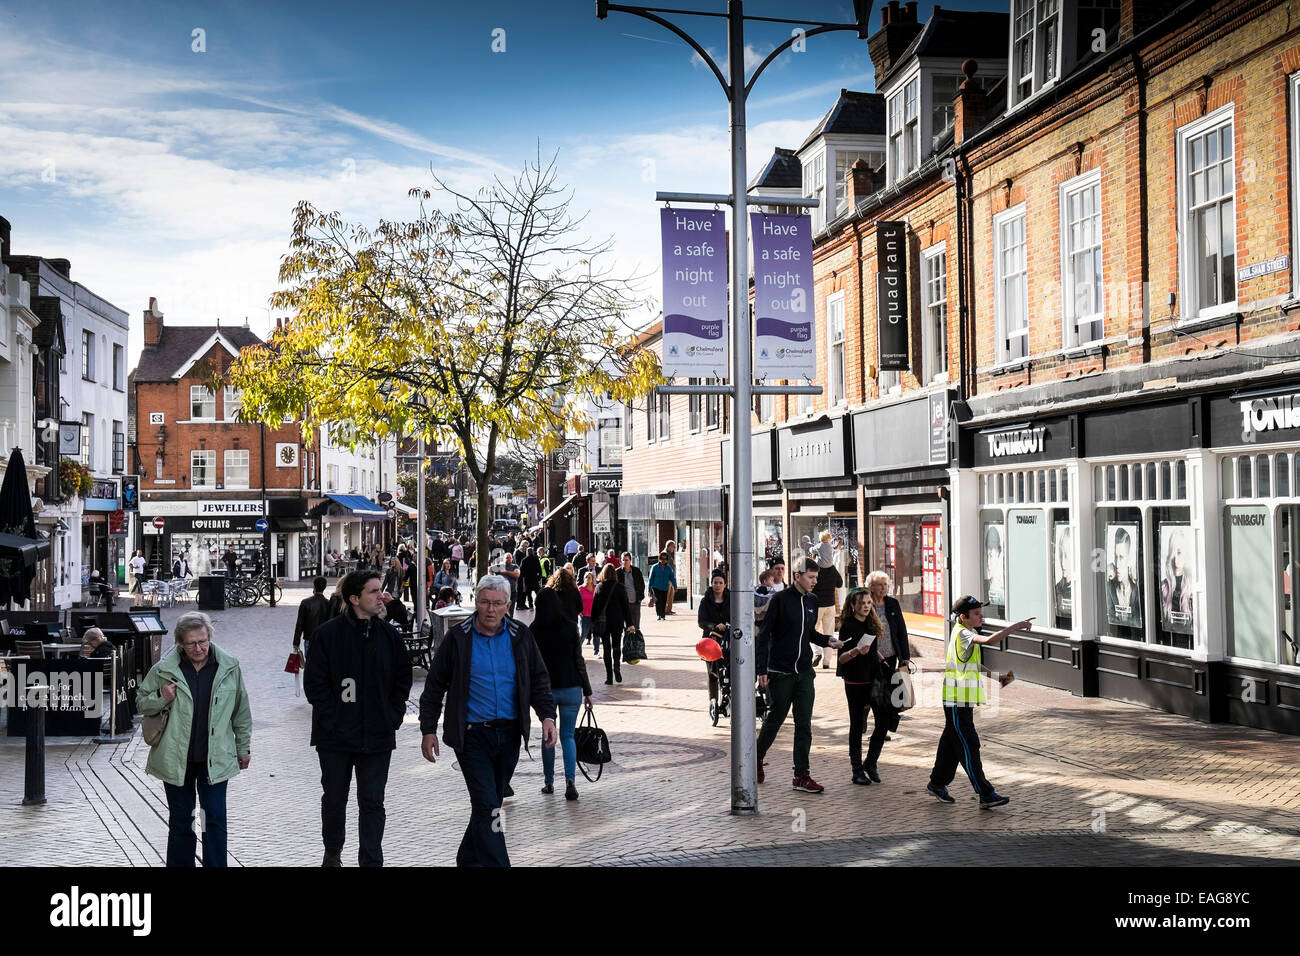 Shoppers in Chelmsford City Centre. - Stock Image